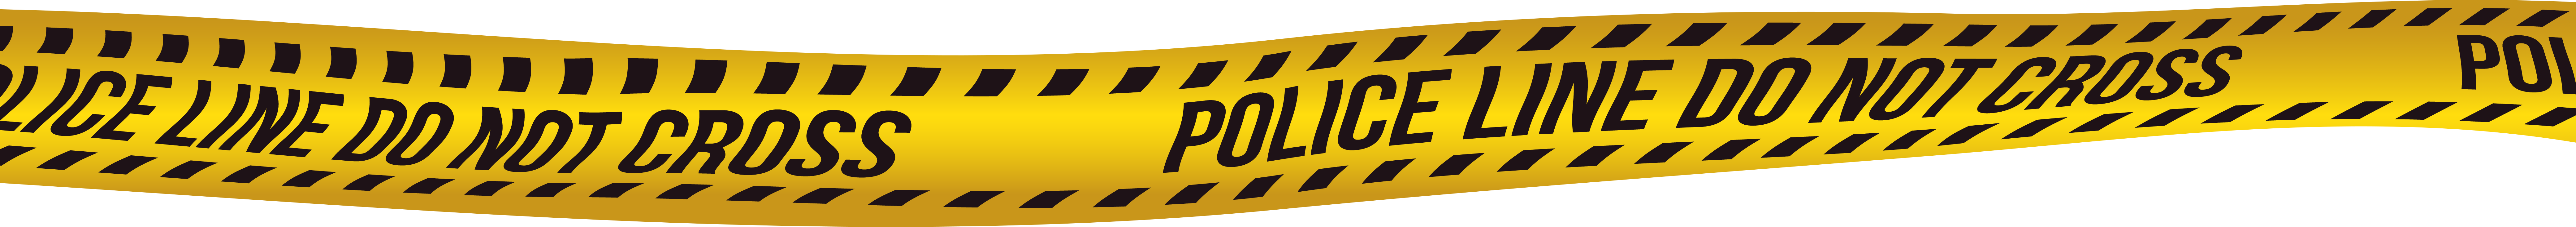 Police Line Do Not Cross Png - Police Line Do Not Cross PNG Clip Art Image | Gallery ...